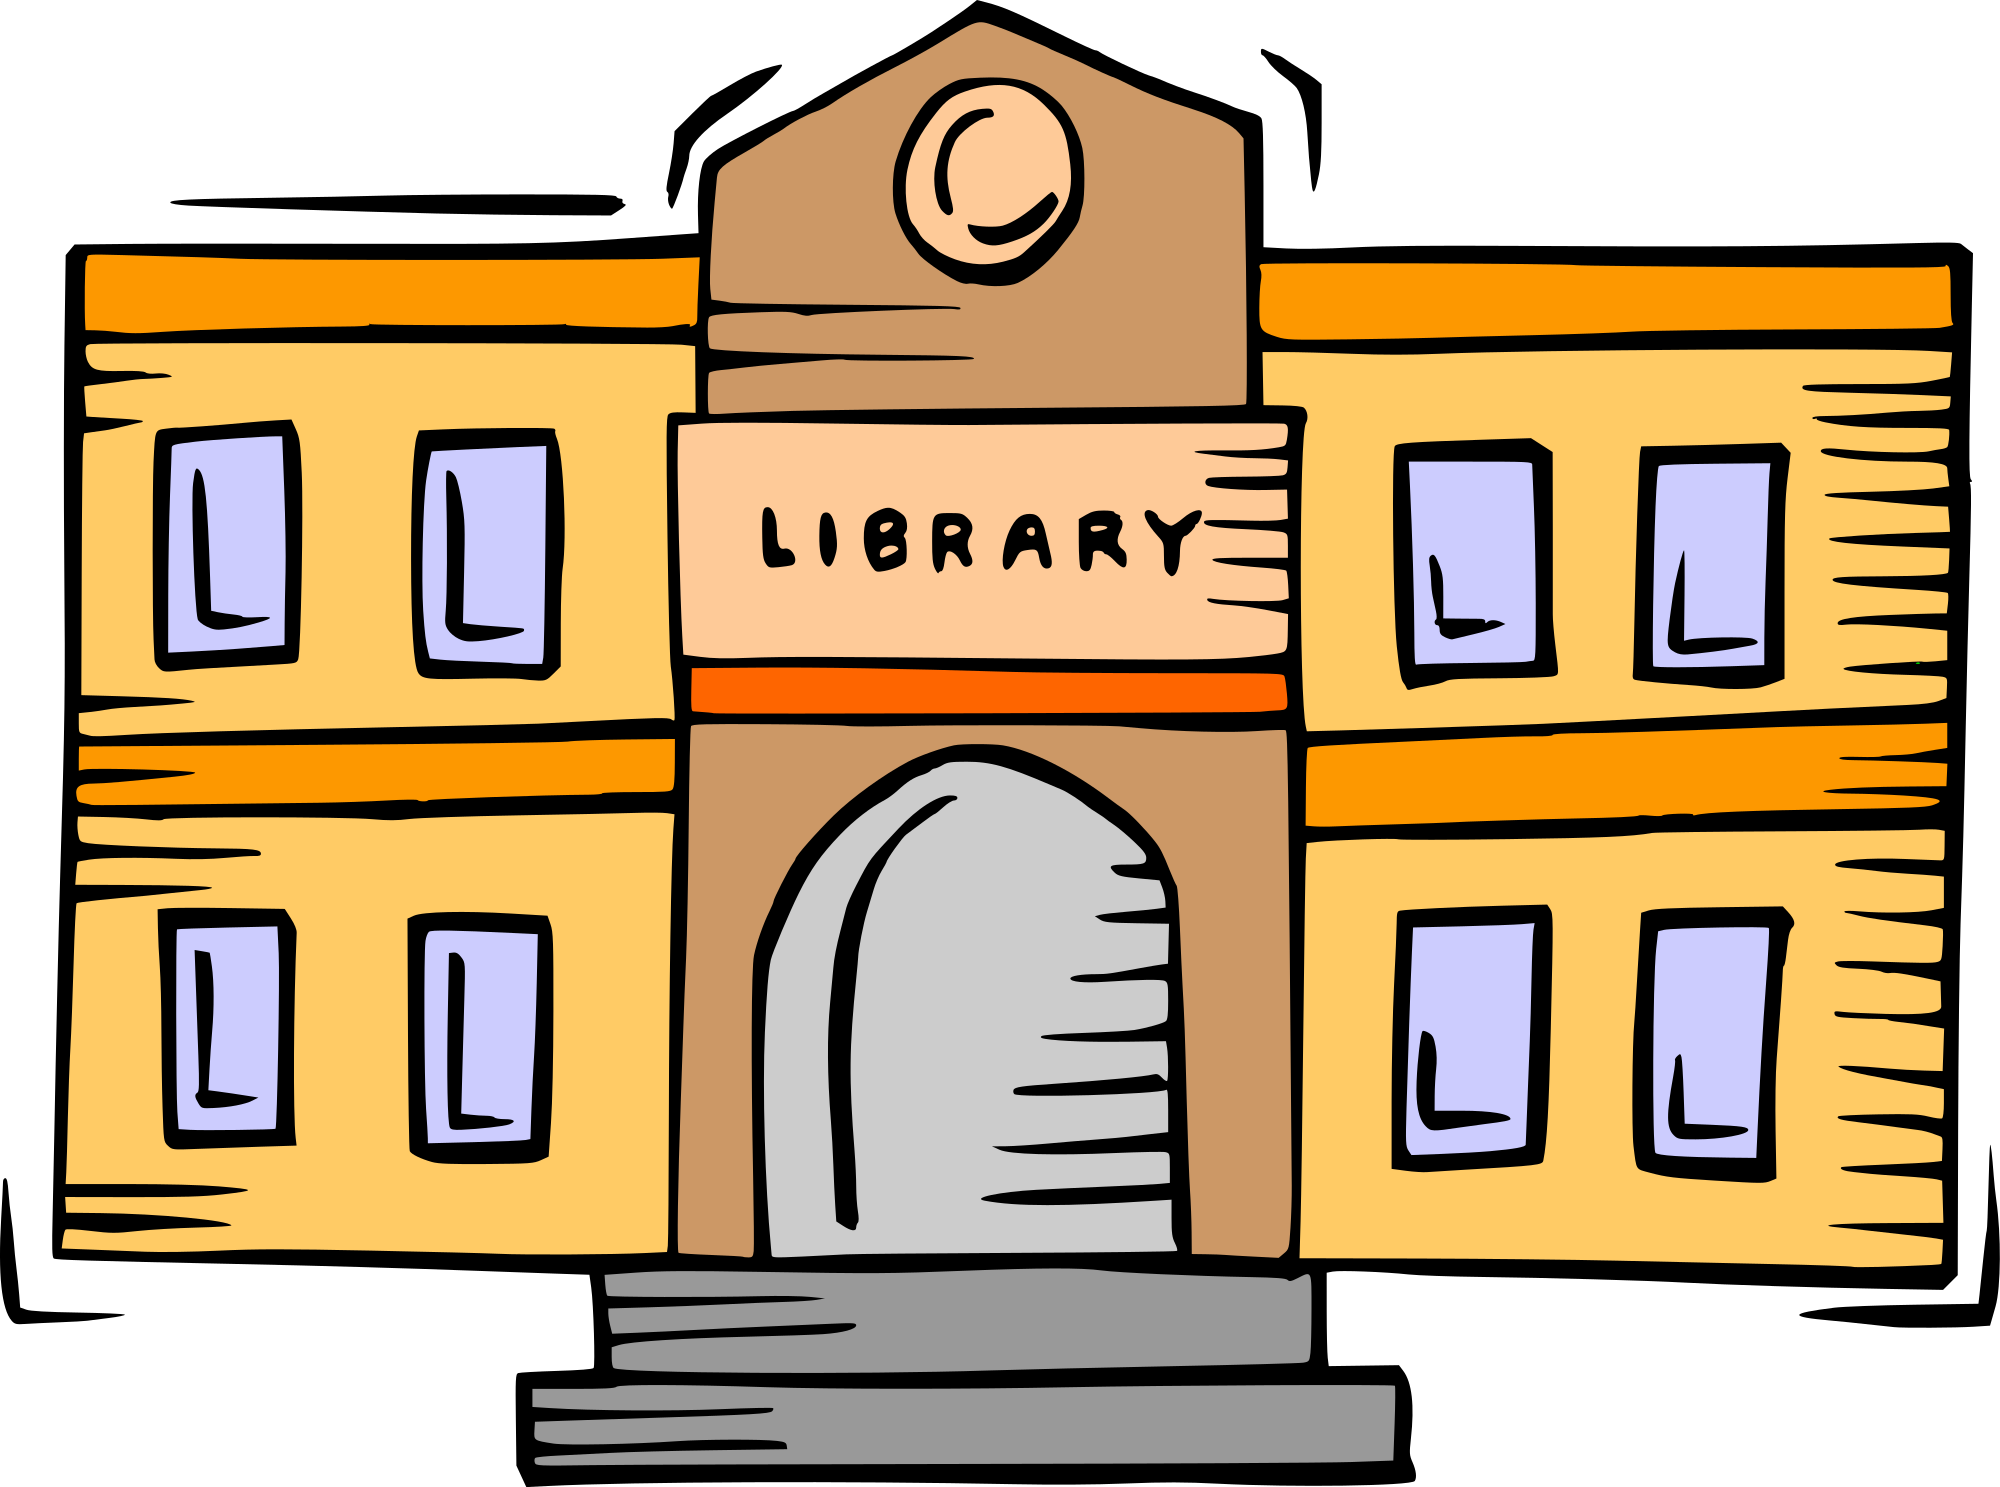 clip library download File svg wikimedia commons. Library building clipart.